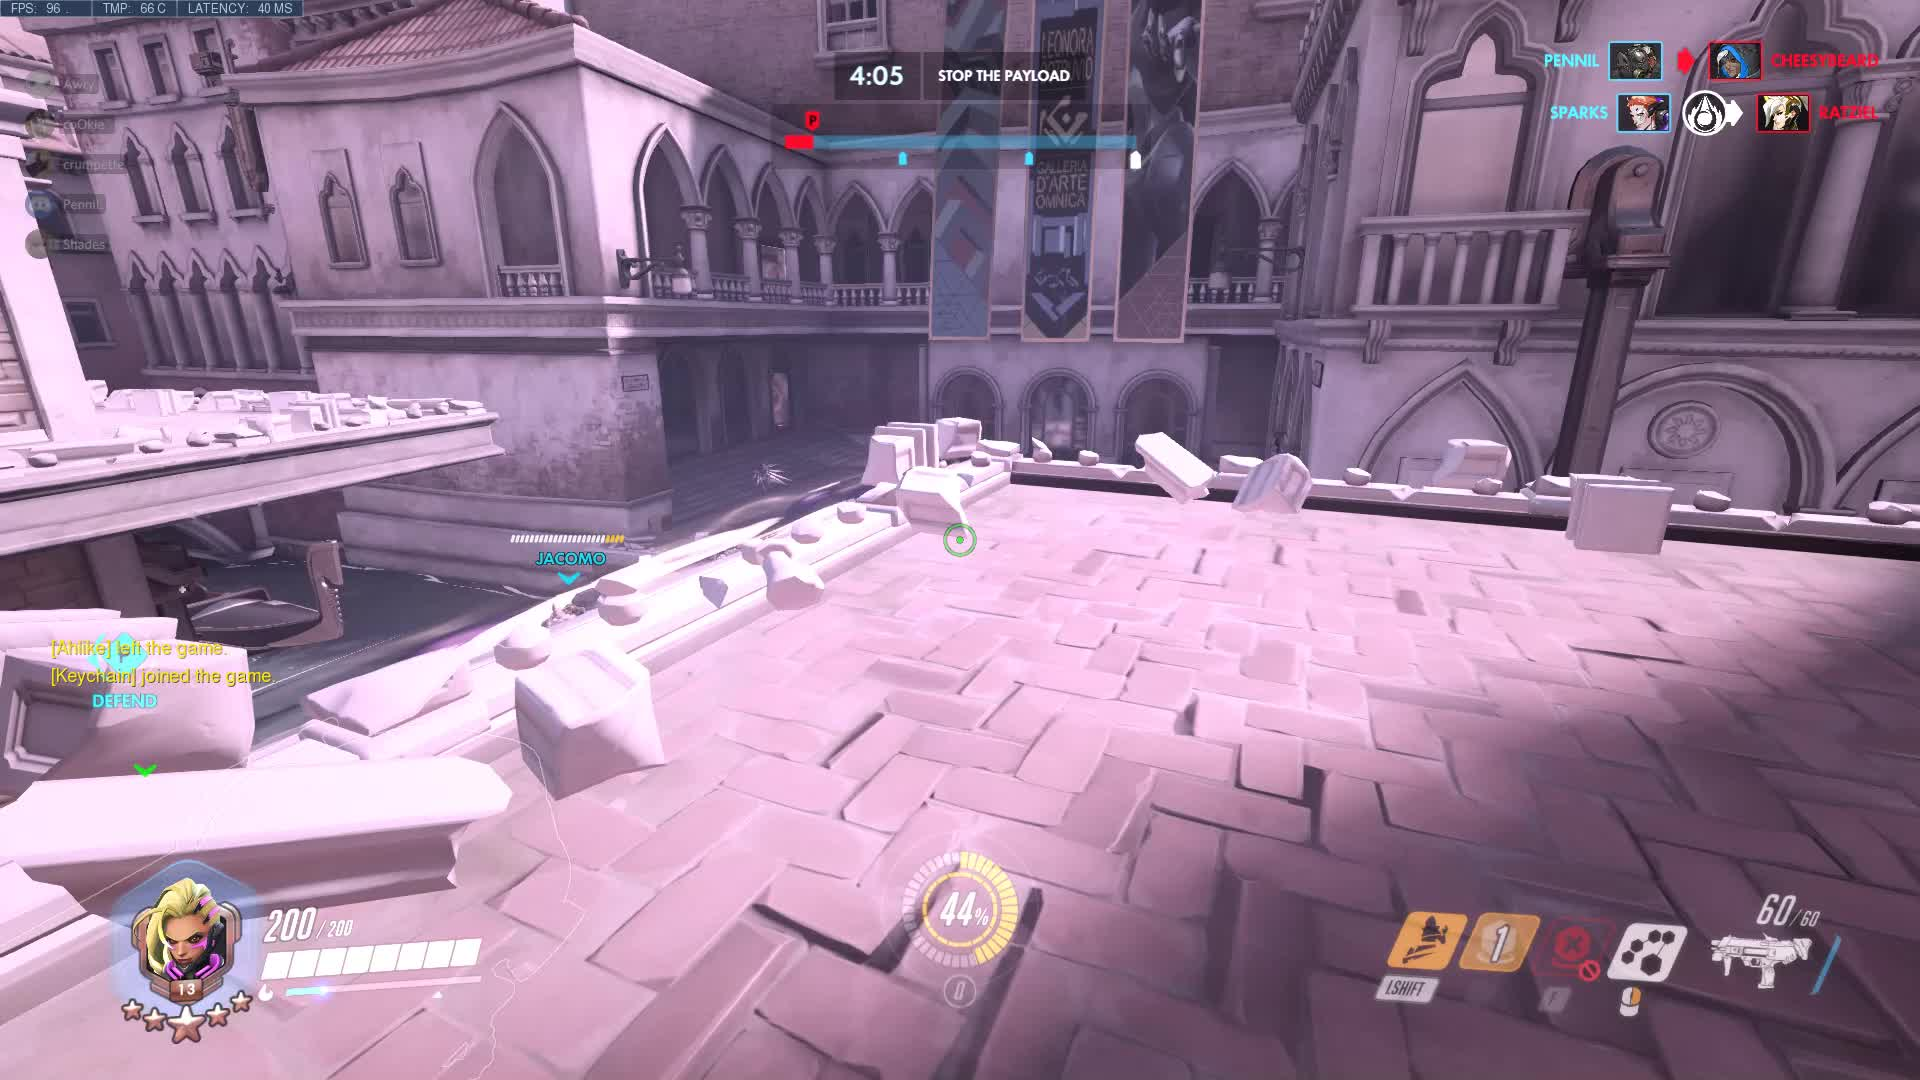 cookienomster, gaming, overwatch, sombra, Hacked GIFs